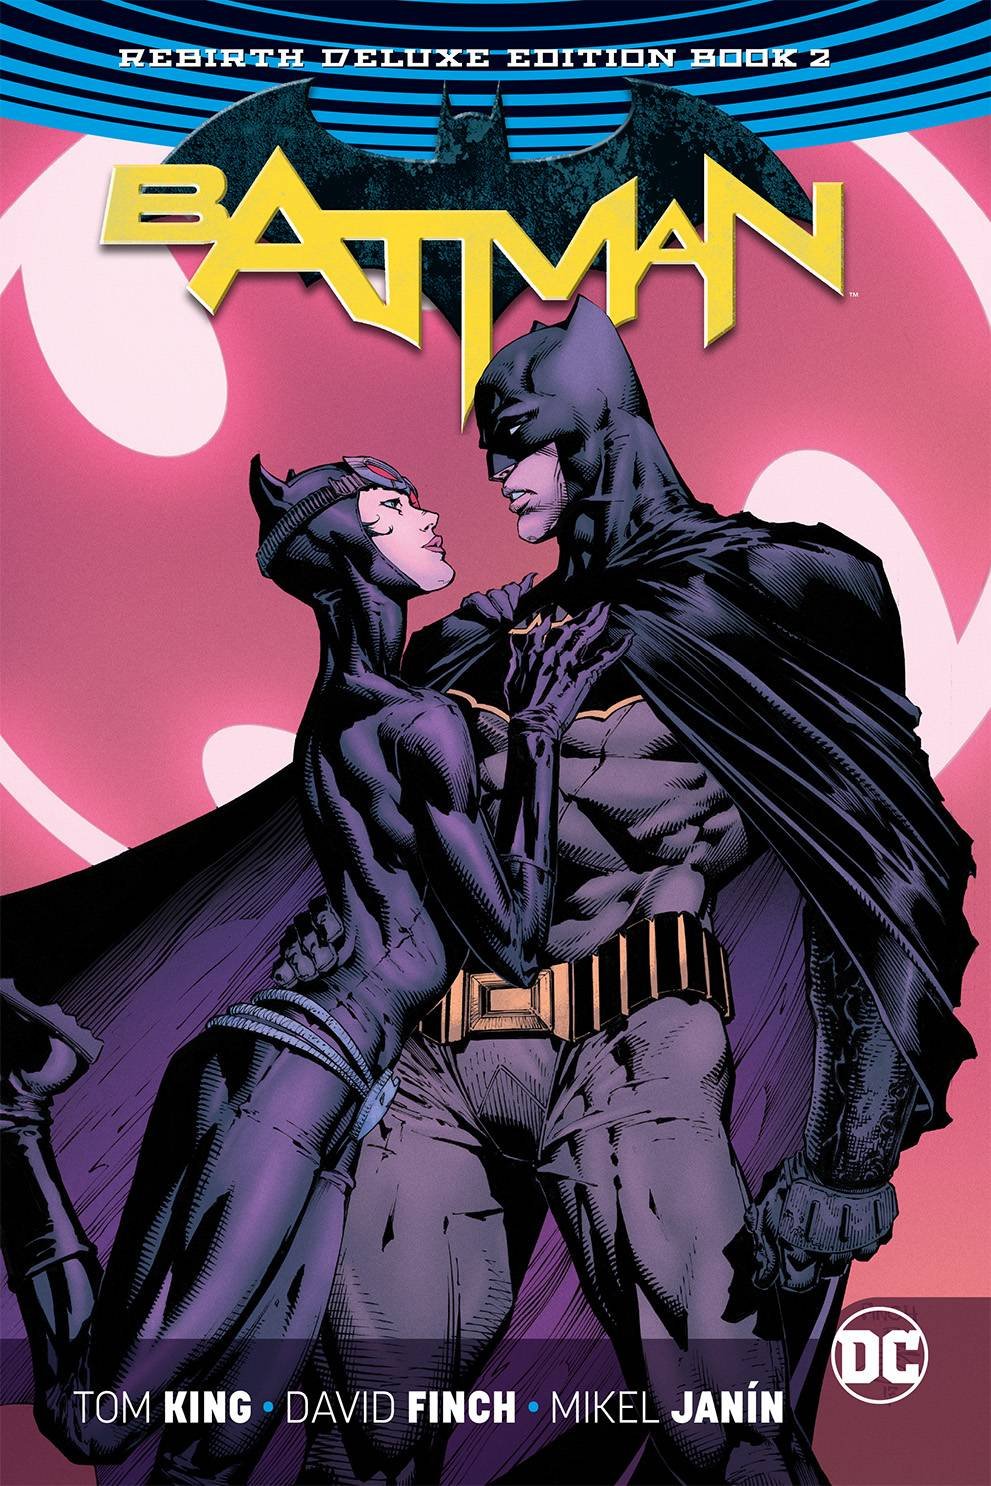 Batman - Rebirth Deluxe Edition - Book 2 Hardcover